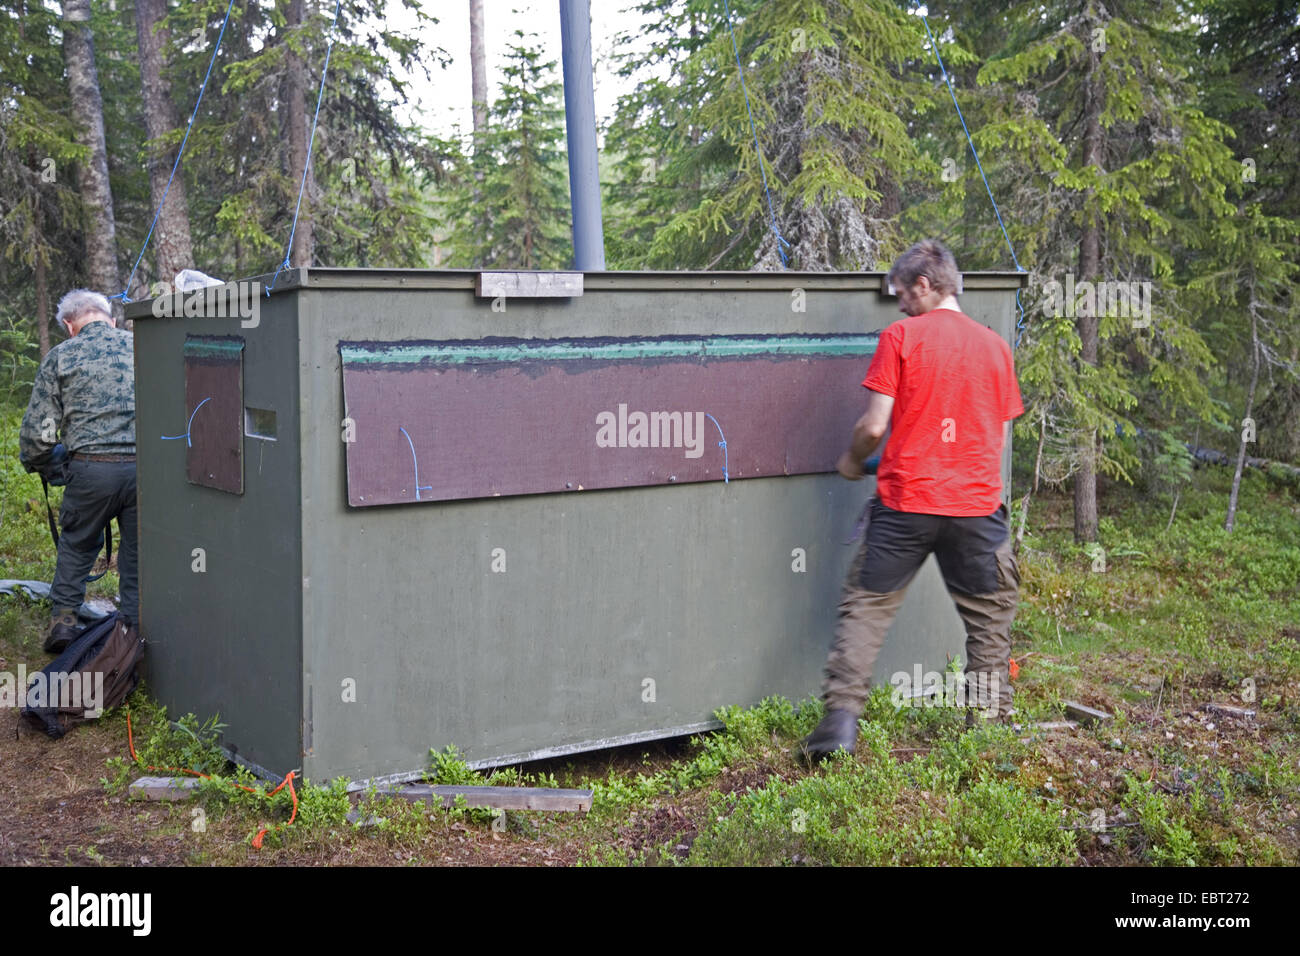 bear guide securing photo-hide to exclude bears, Finland, Martinselkonen Wilds Centre - Stock Image